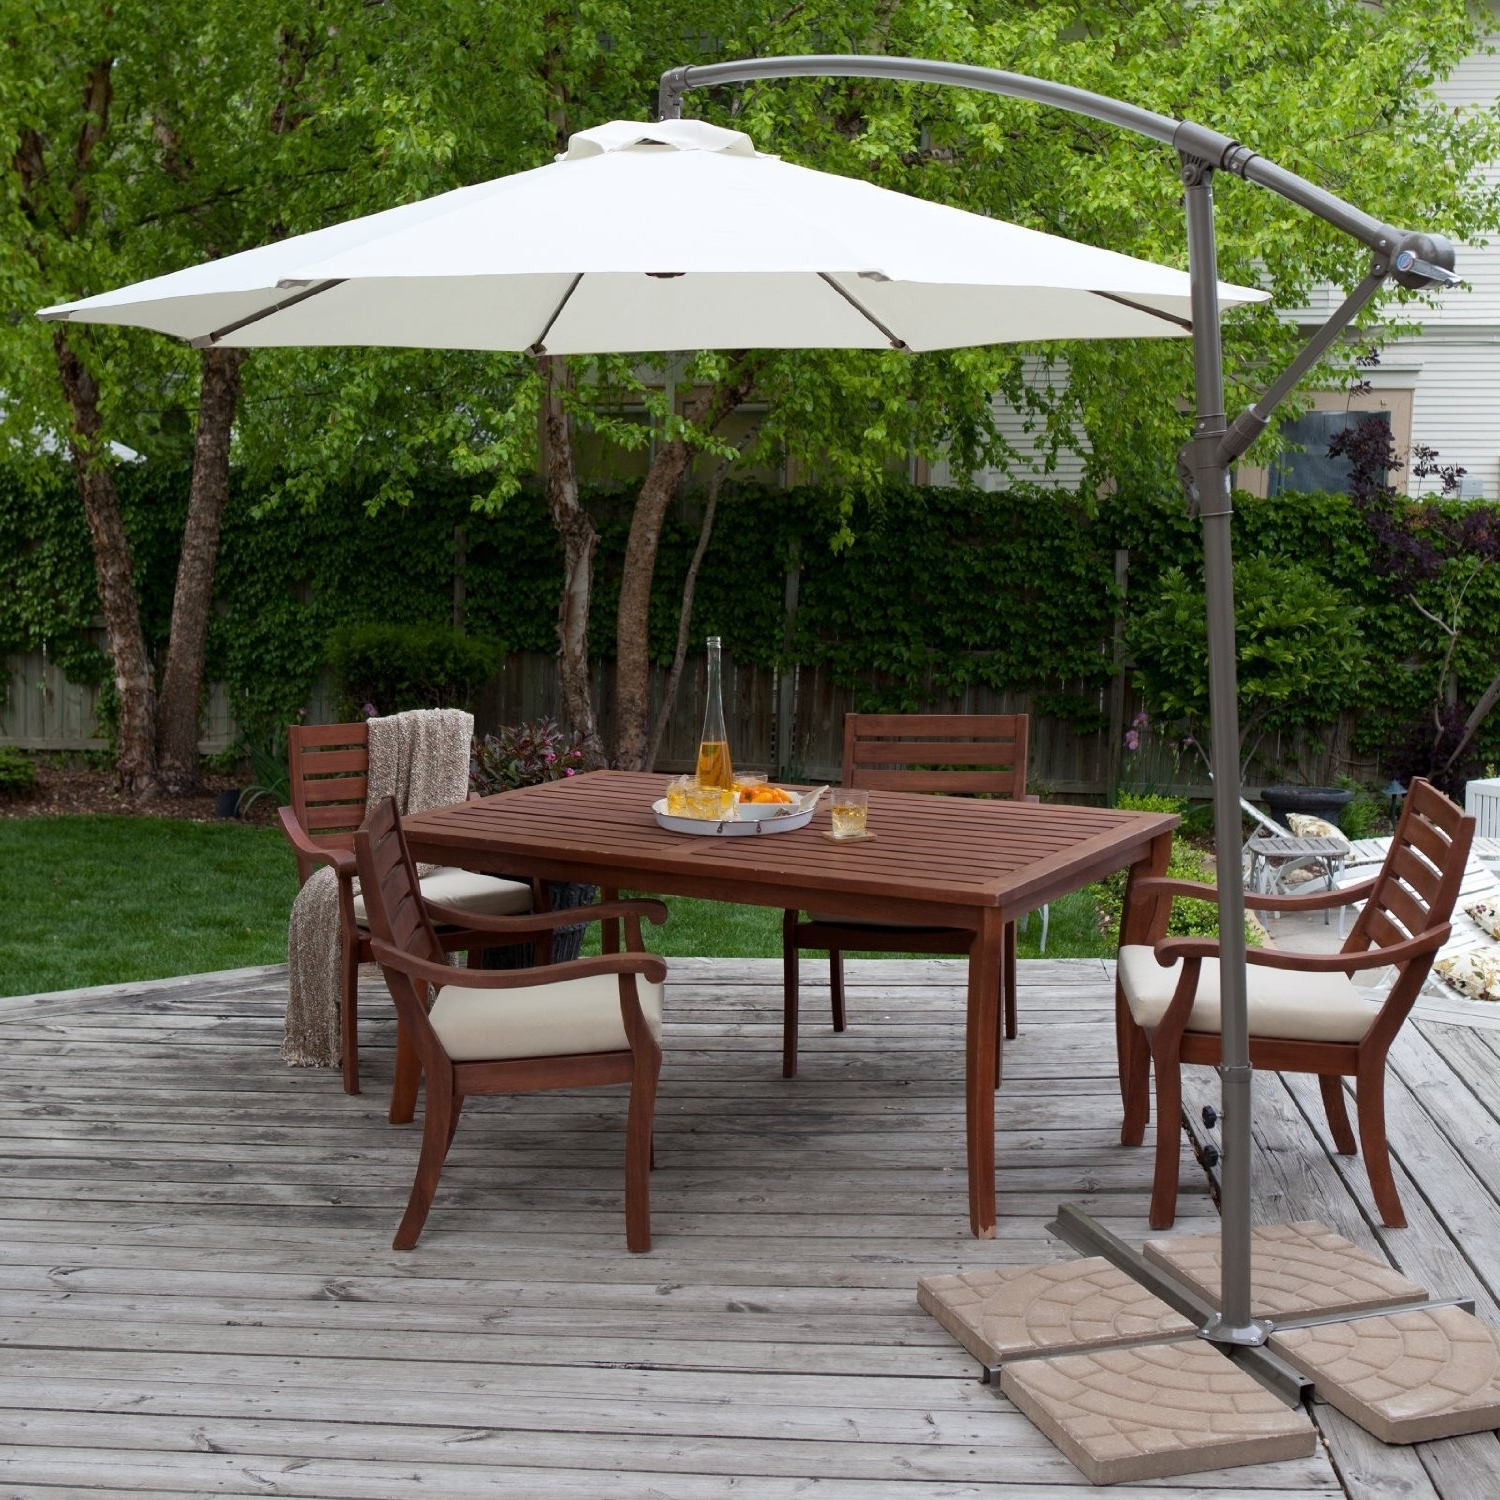 Favorite Patio Dining Umbrellas Within Inspirations: Offset Umbrella Clearance For Appealing Patio (View 13 of 20)